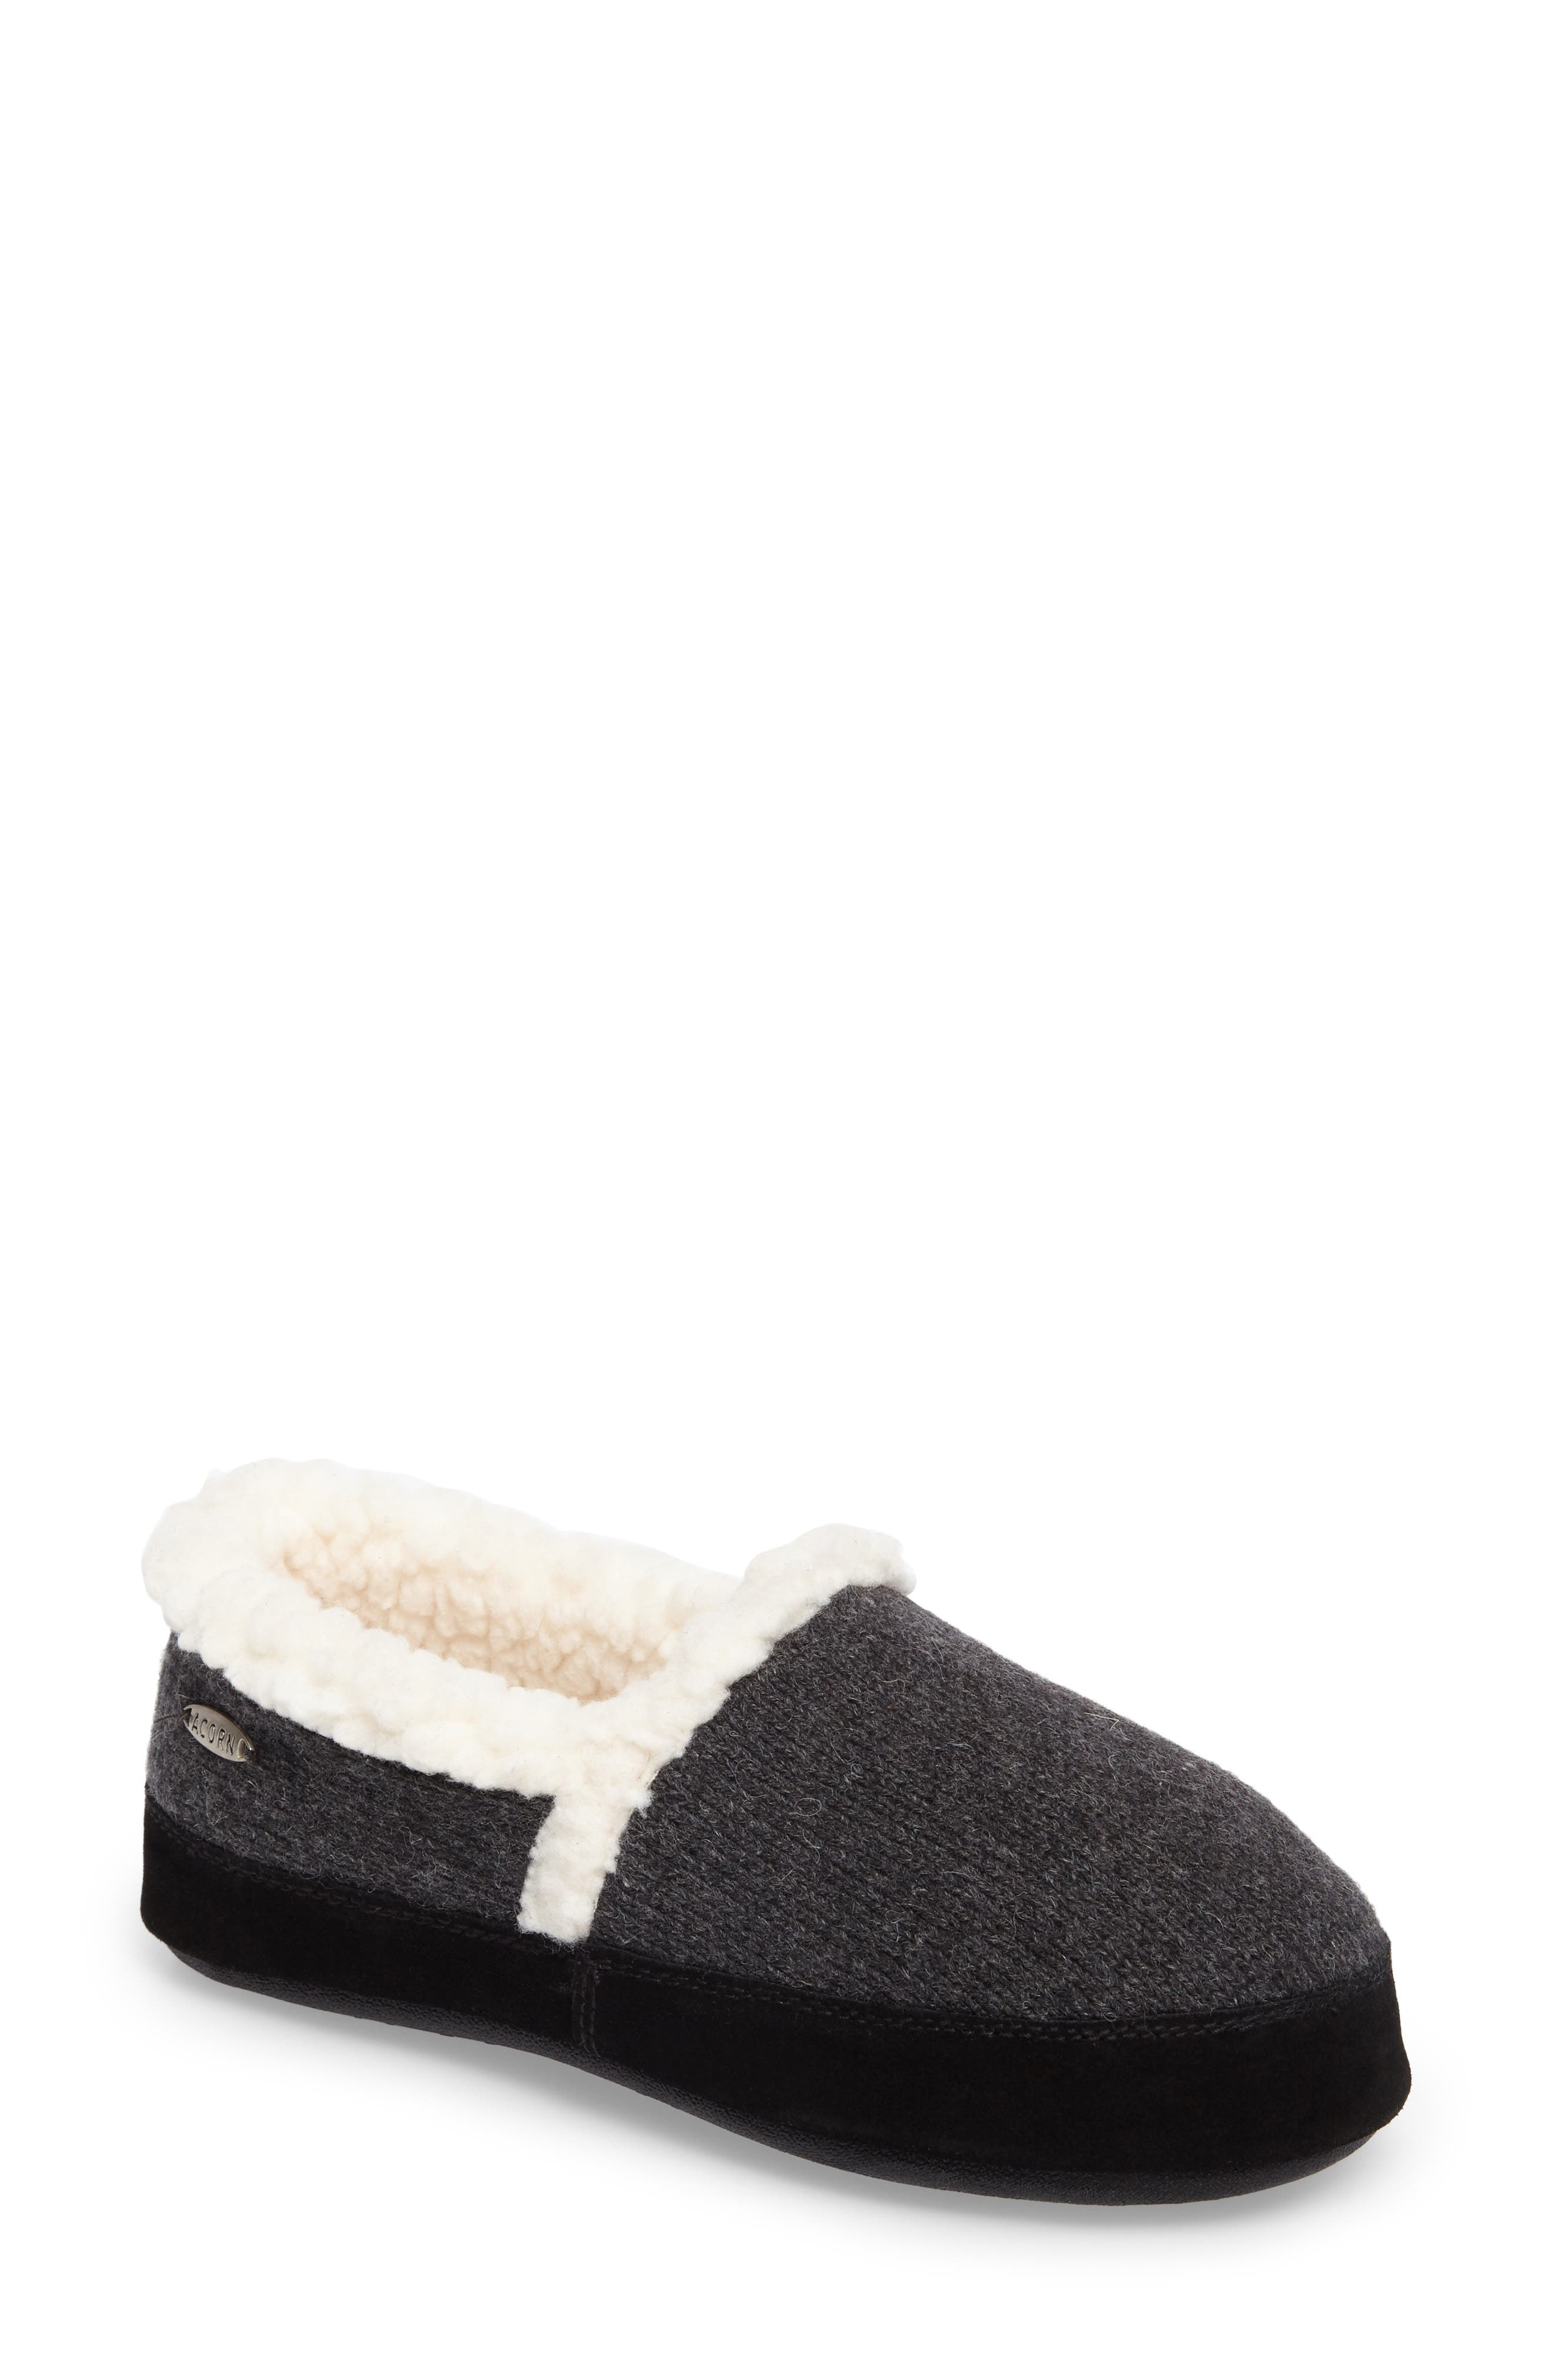 Main Image - Acorn Moc Ragg Slipper (Women)